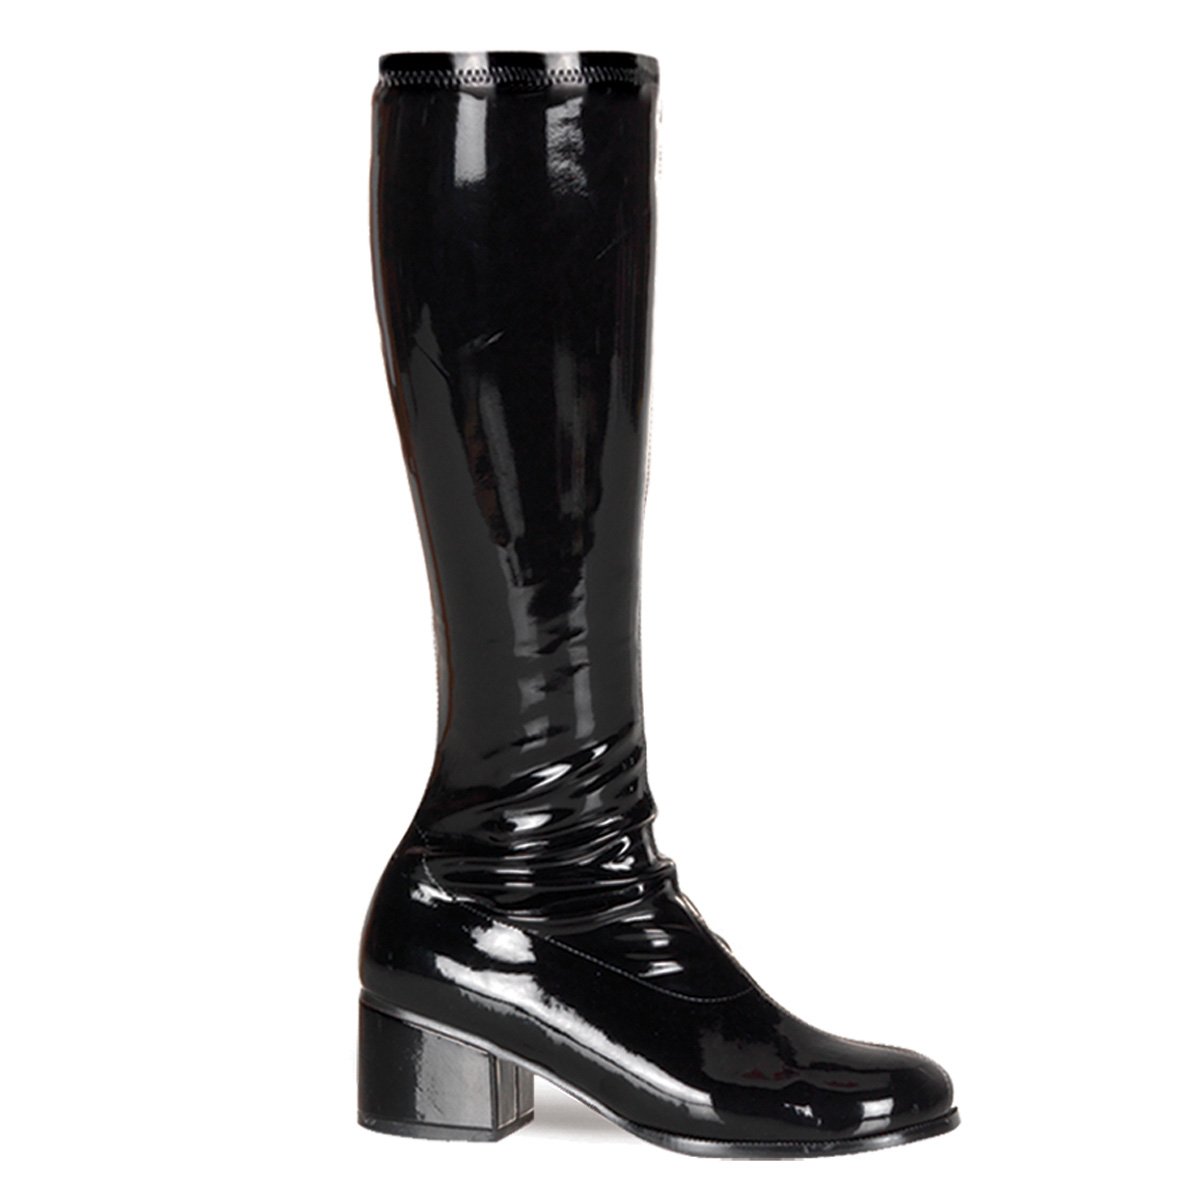 Pleaser Retro-300 GOGO Black Knee High Costume Boots Shoes at Sears.com